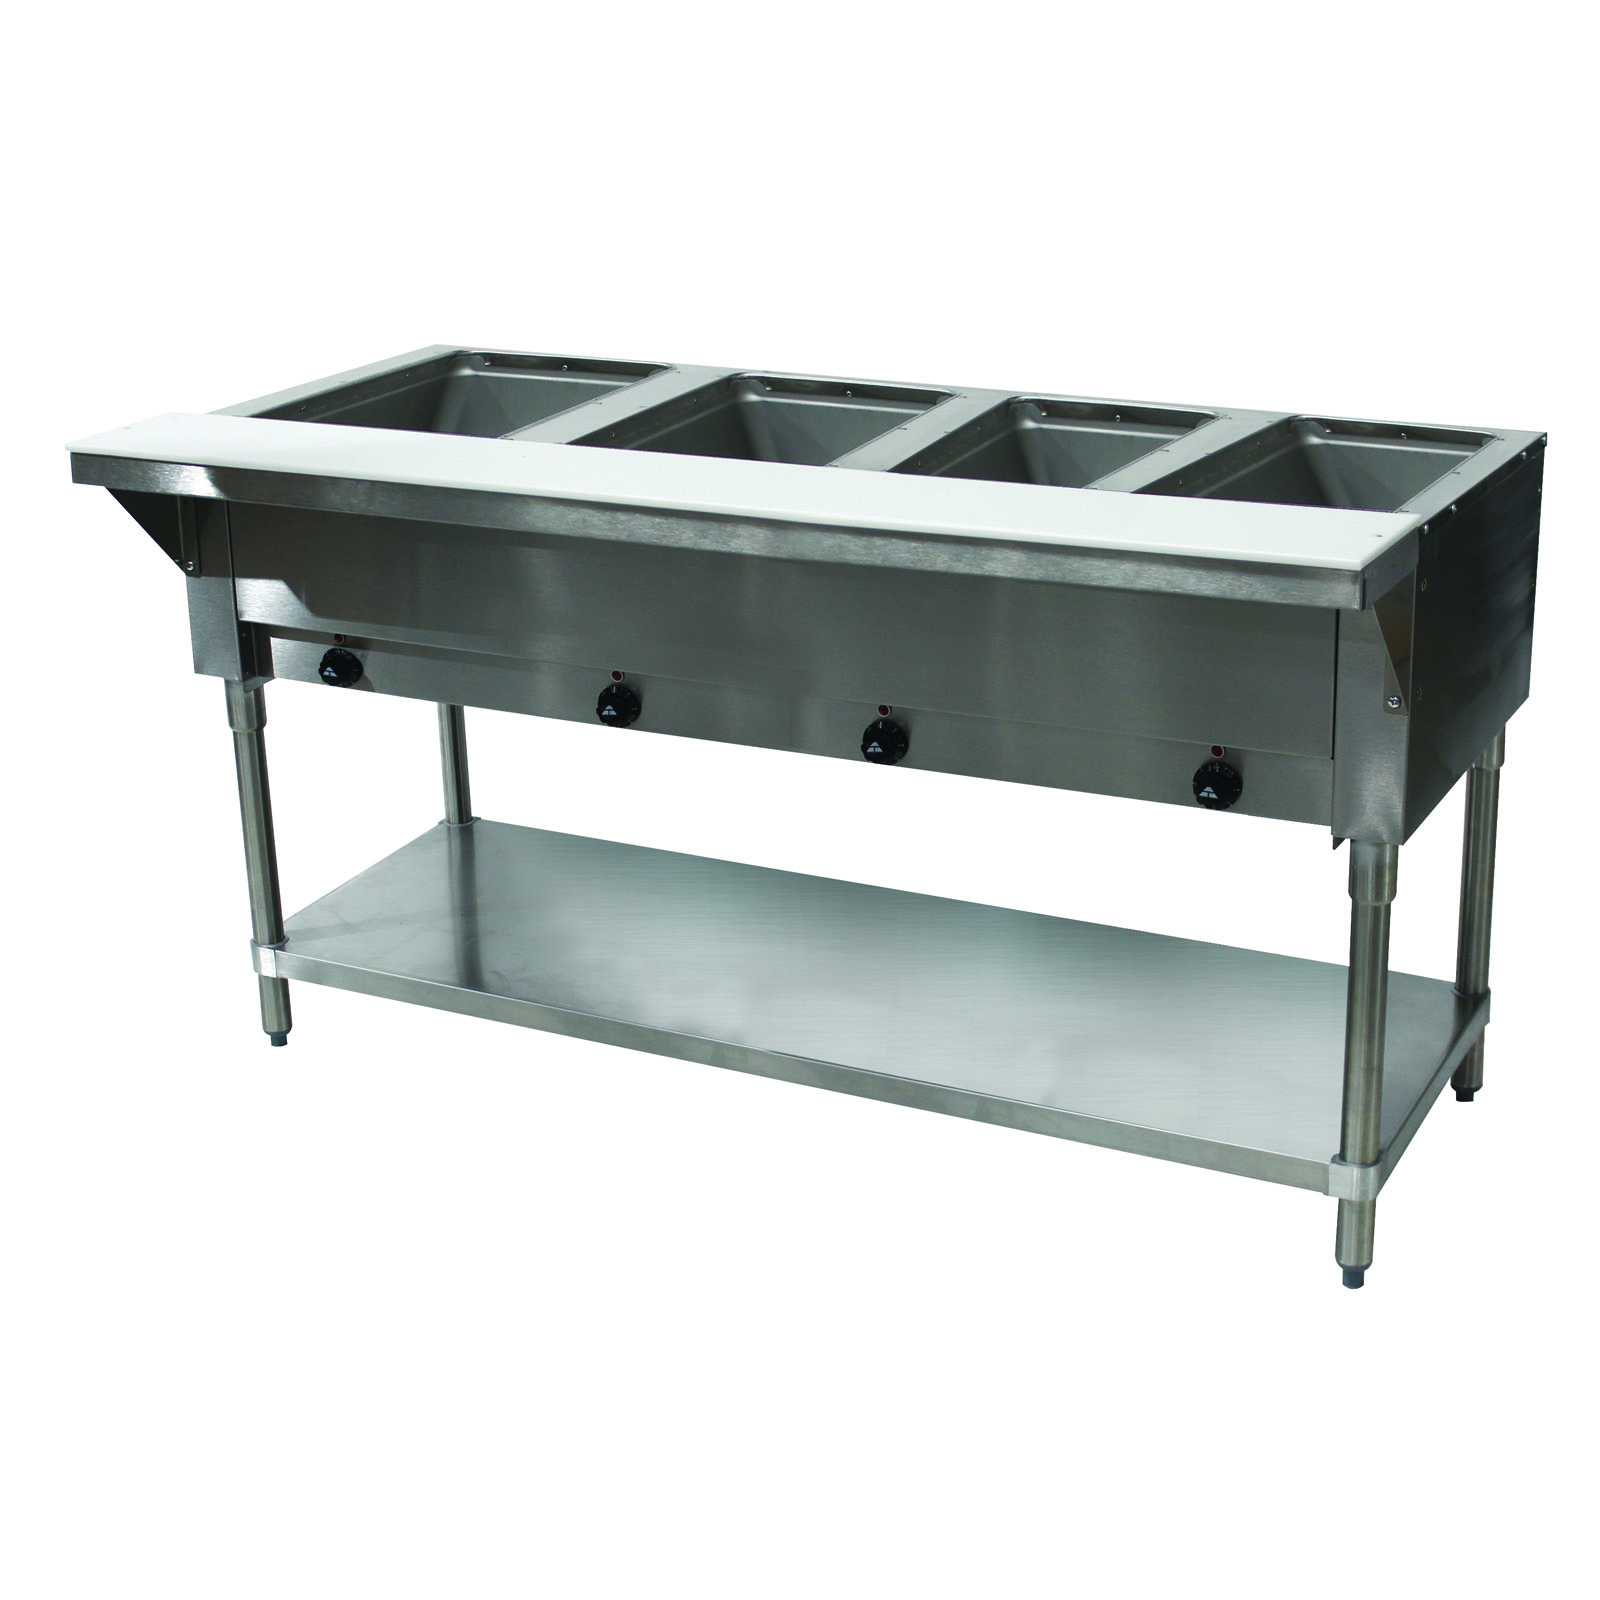 Advance Tabco SW-4E-240 serving counter, hot food, electric